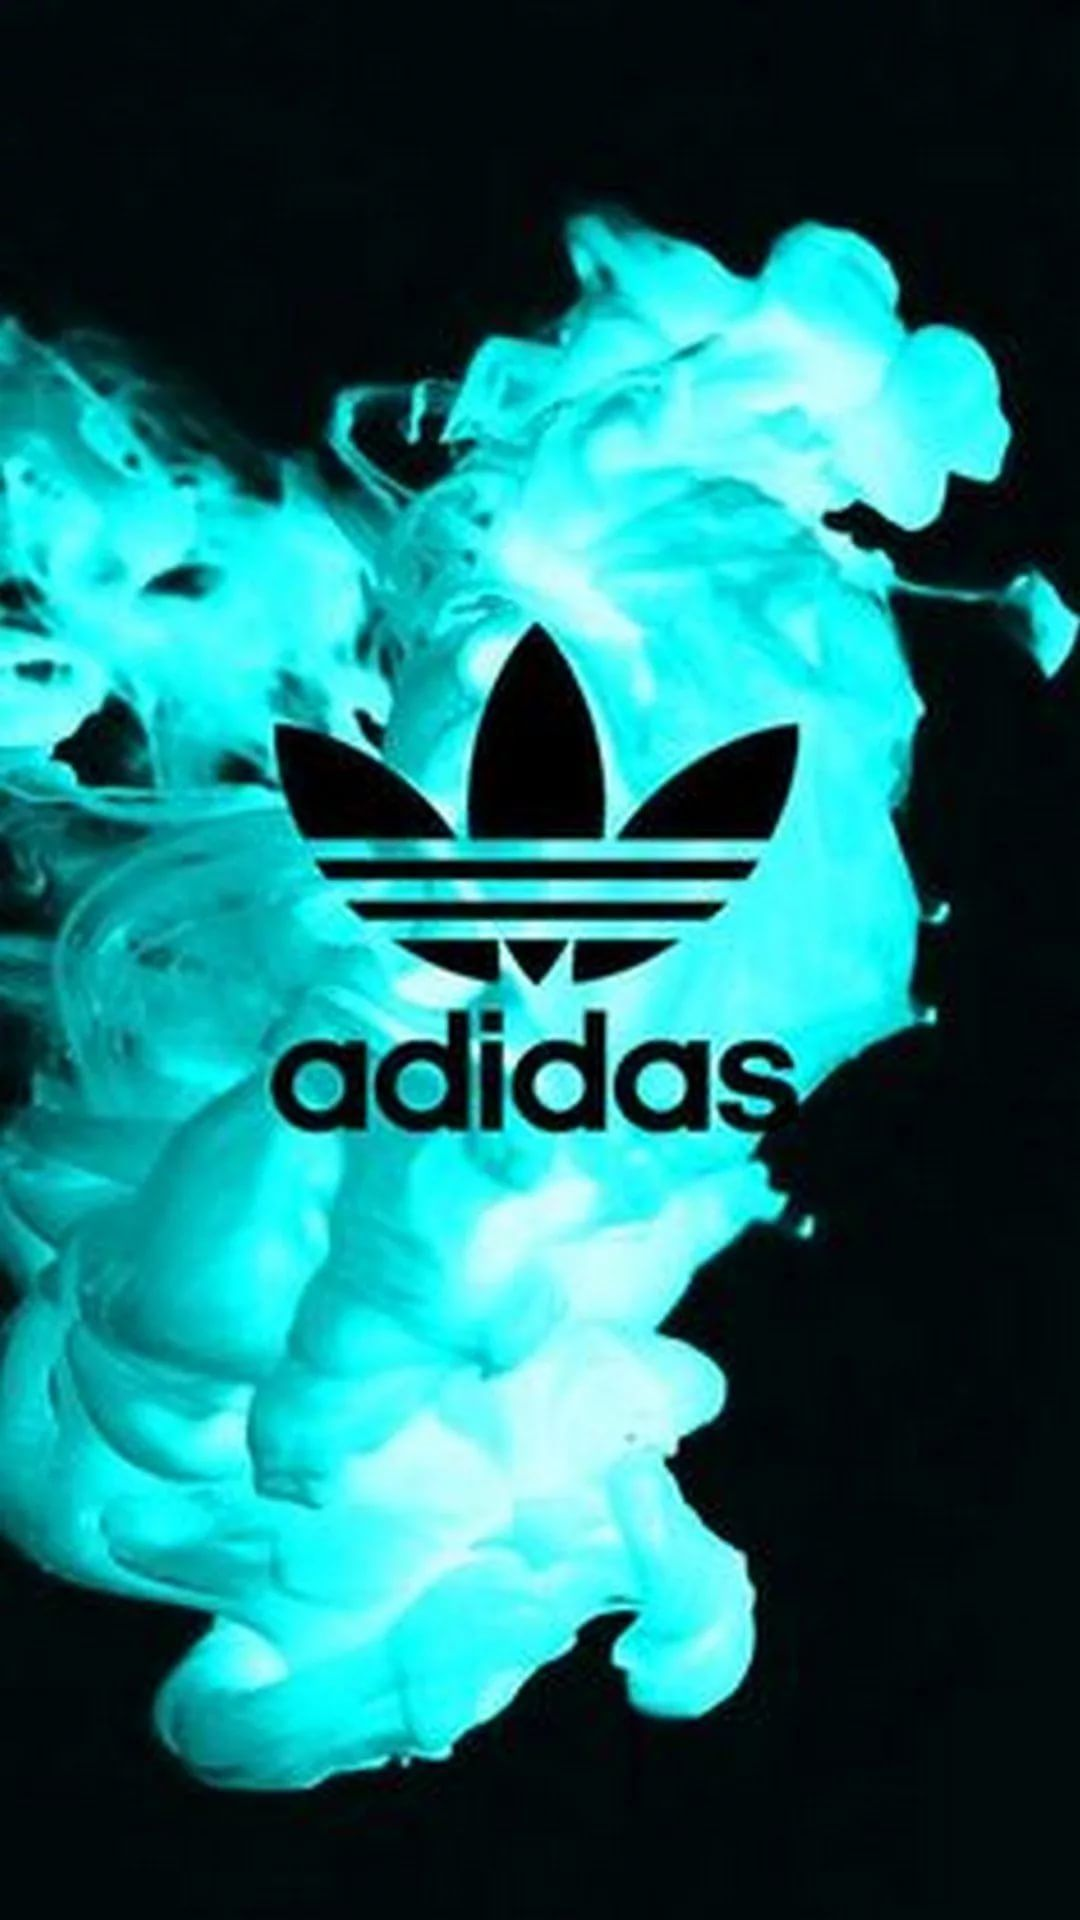 Adidas Android Wallpapers Top Free Adidas Android Backgrounds Wallpaperaccess